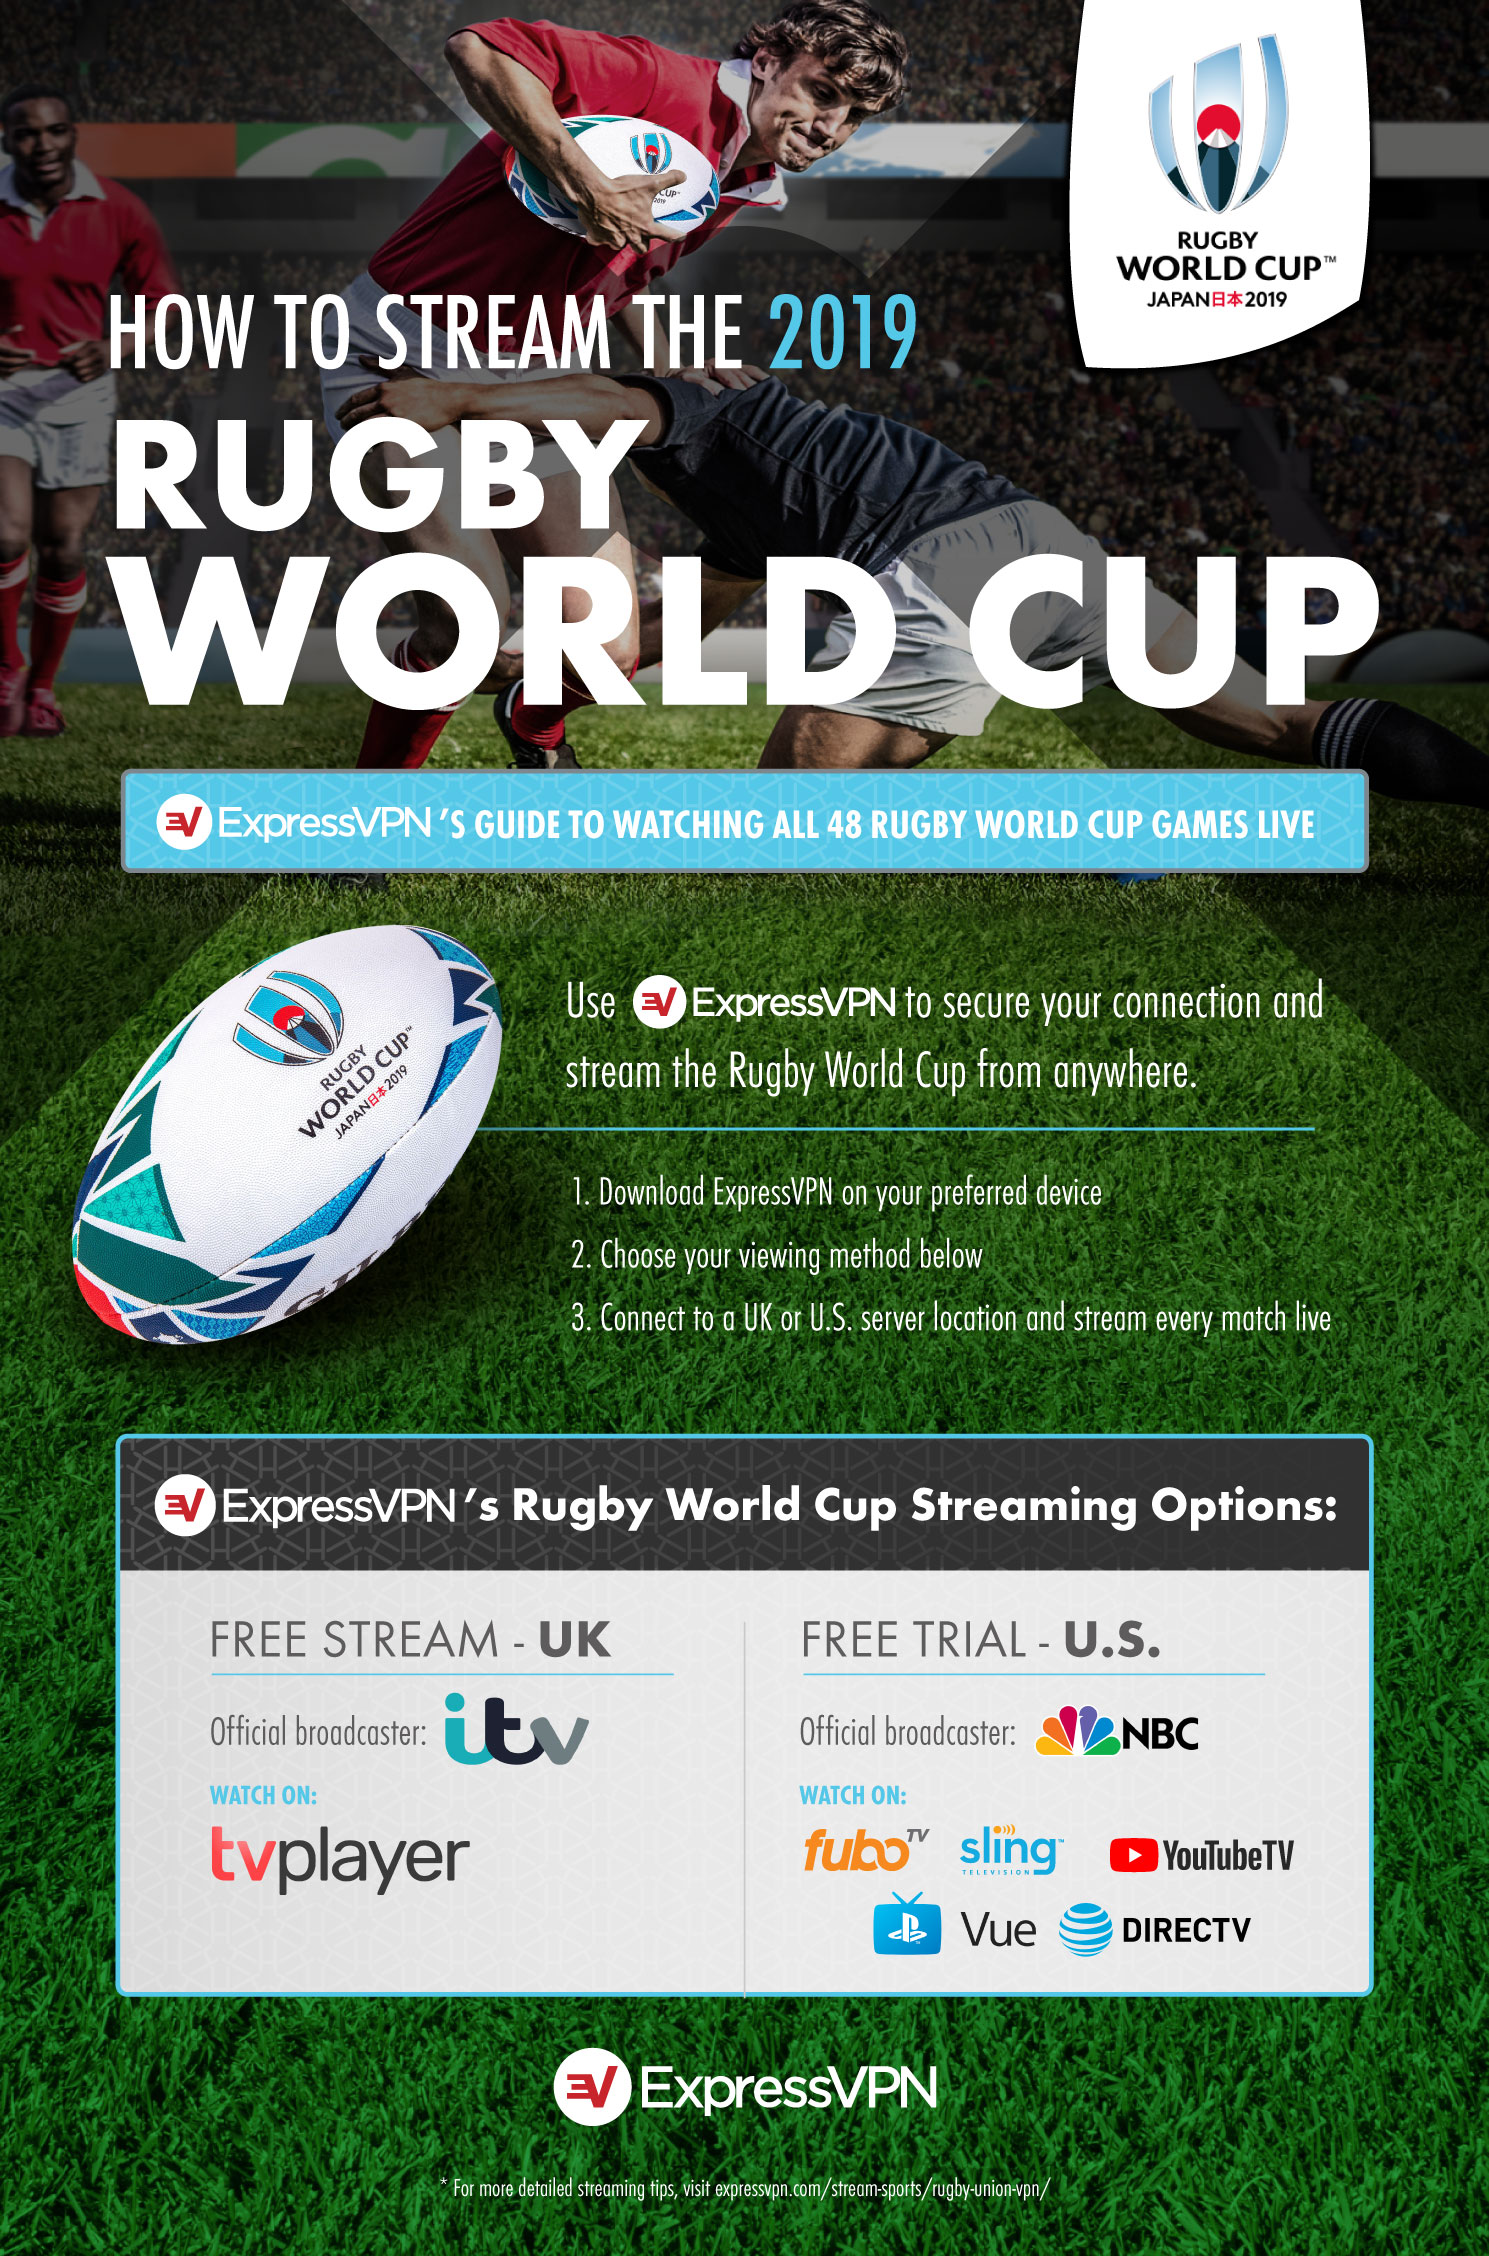 How to Watch Rugby World Cup Live Streams | ExpressVPN